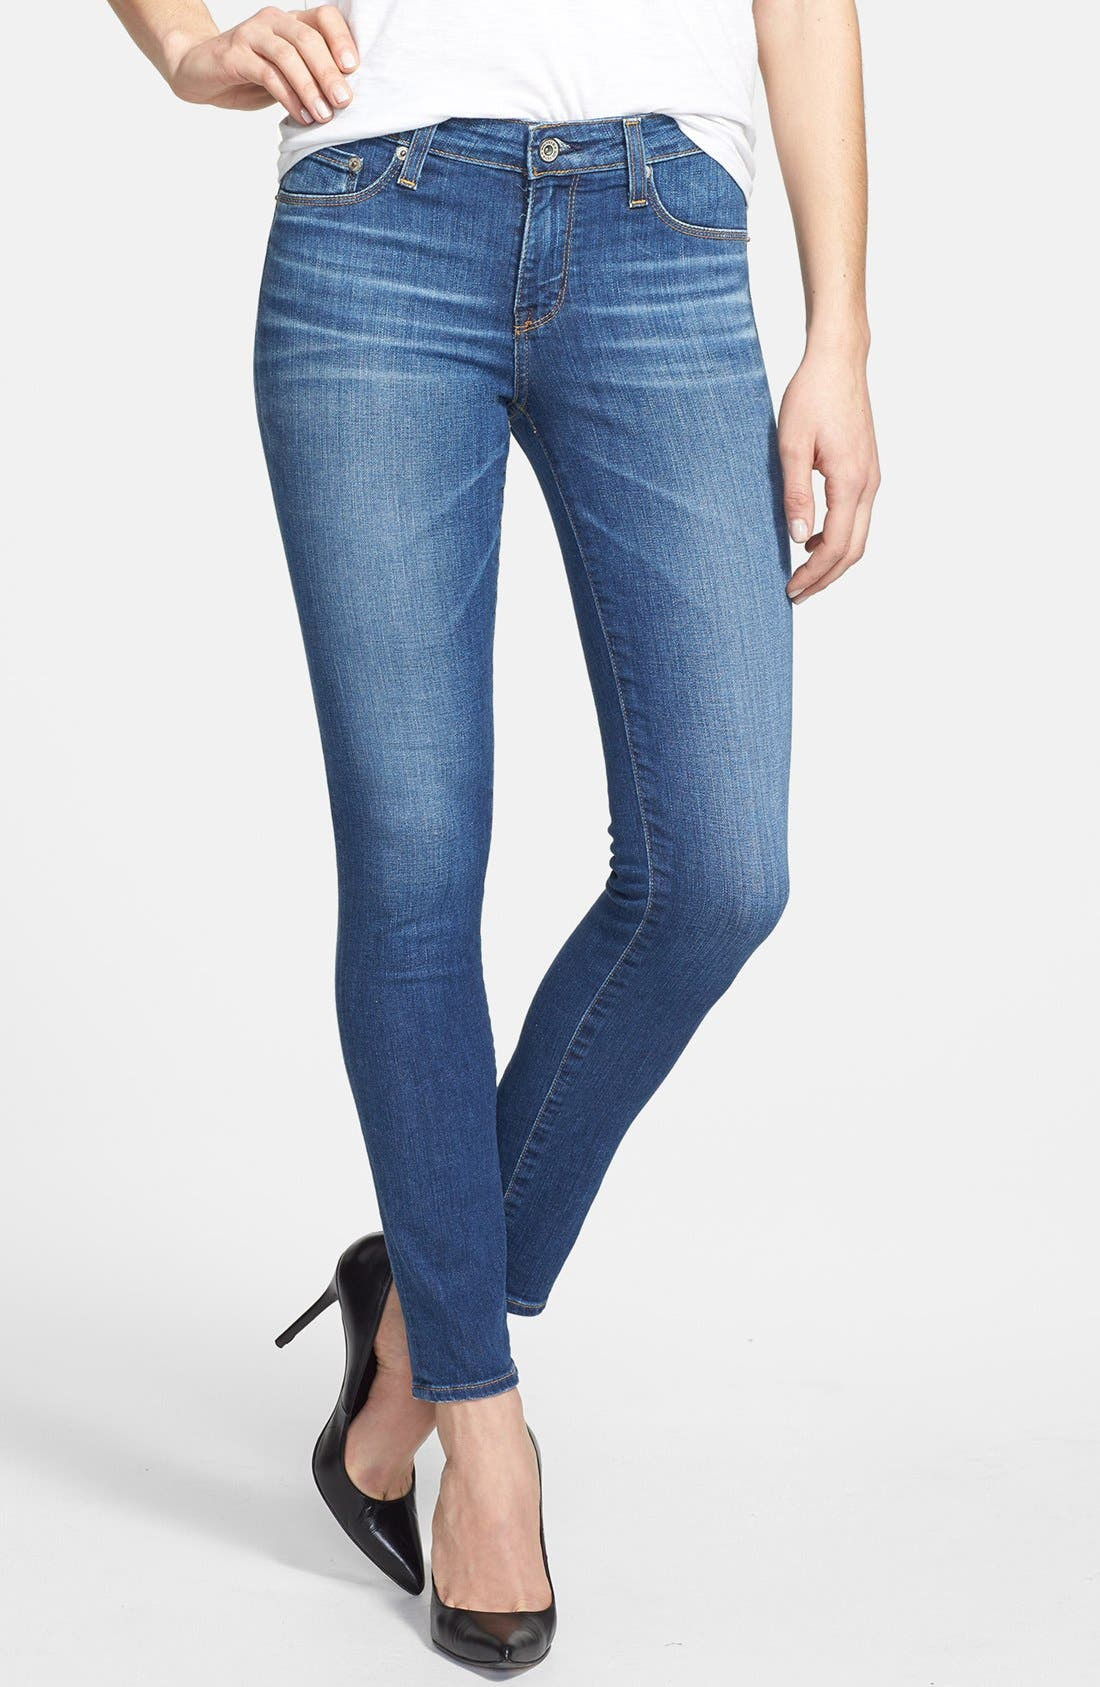 Main Image - Big Star 'Alex' Stretch Skinny Jeans (Oxford) (Petite)